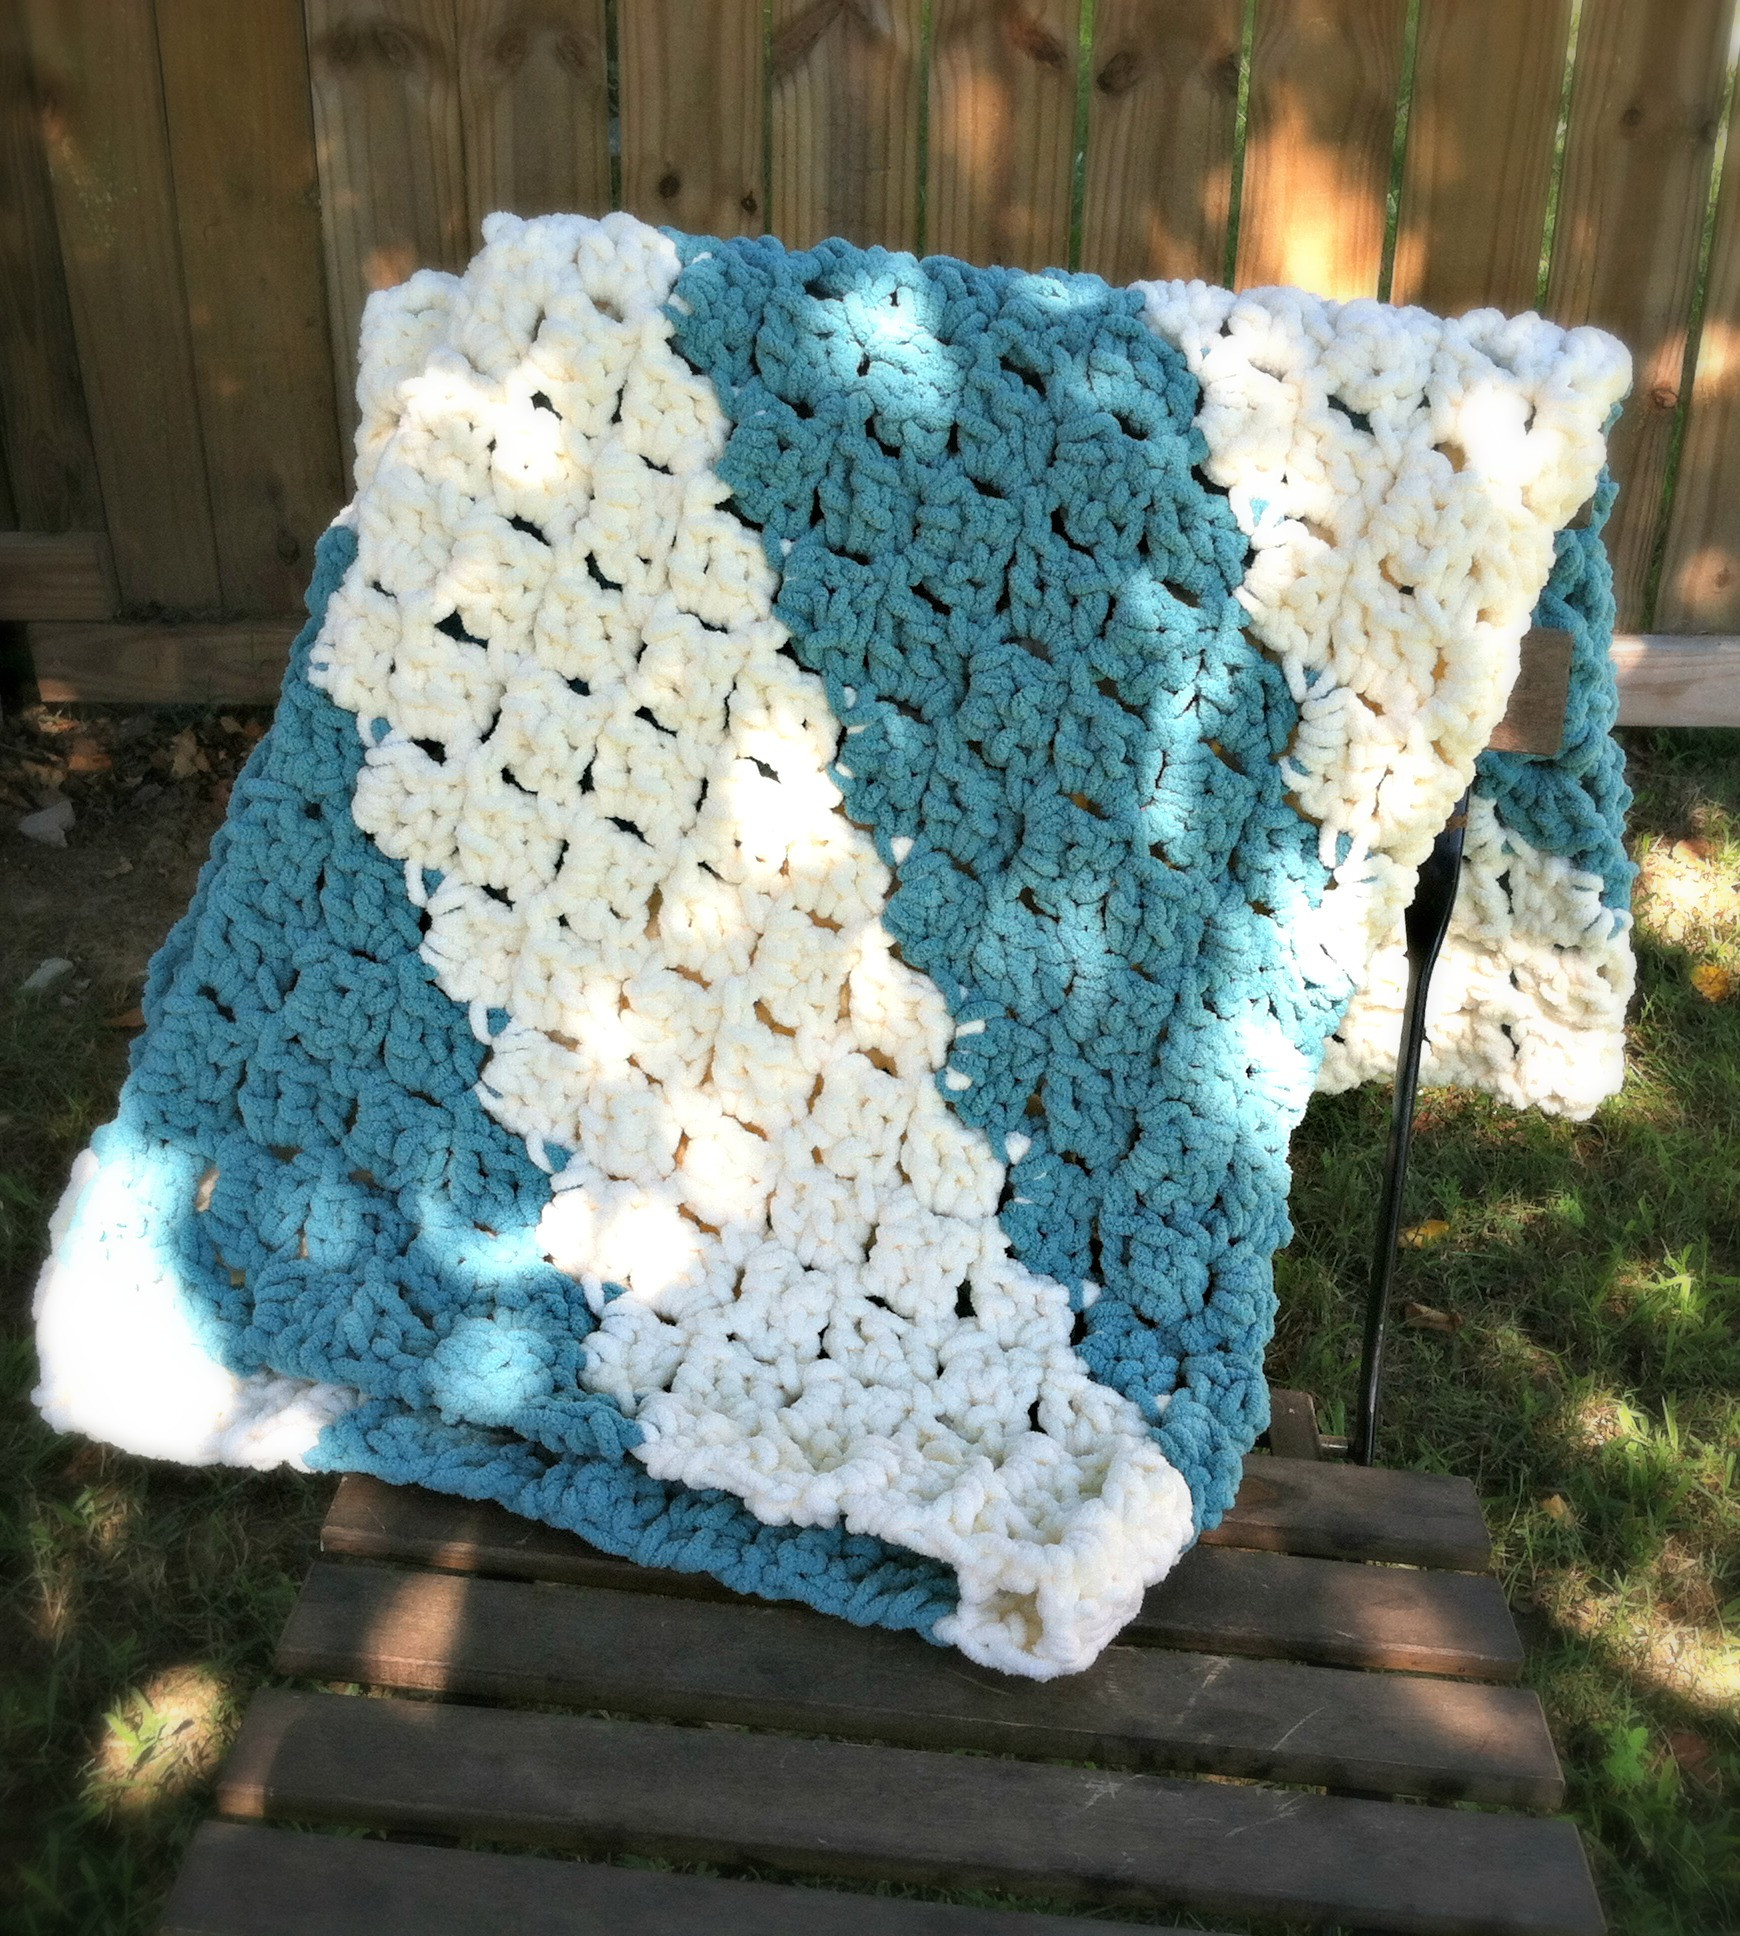 Lovely Quick and Easy Baby Blanket Free Crochet Pattern Crochet Patterns Using Bernat Baby Blanket Yarn Of Superb 47 Models Crochet Patterns Using Bernat Baby Blanket Yarn